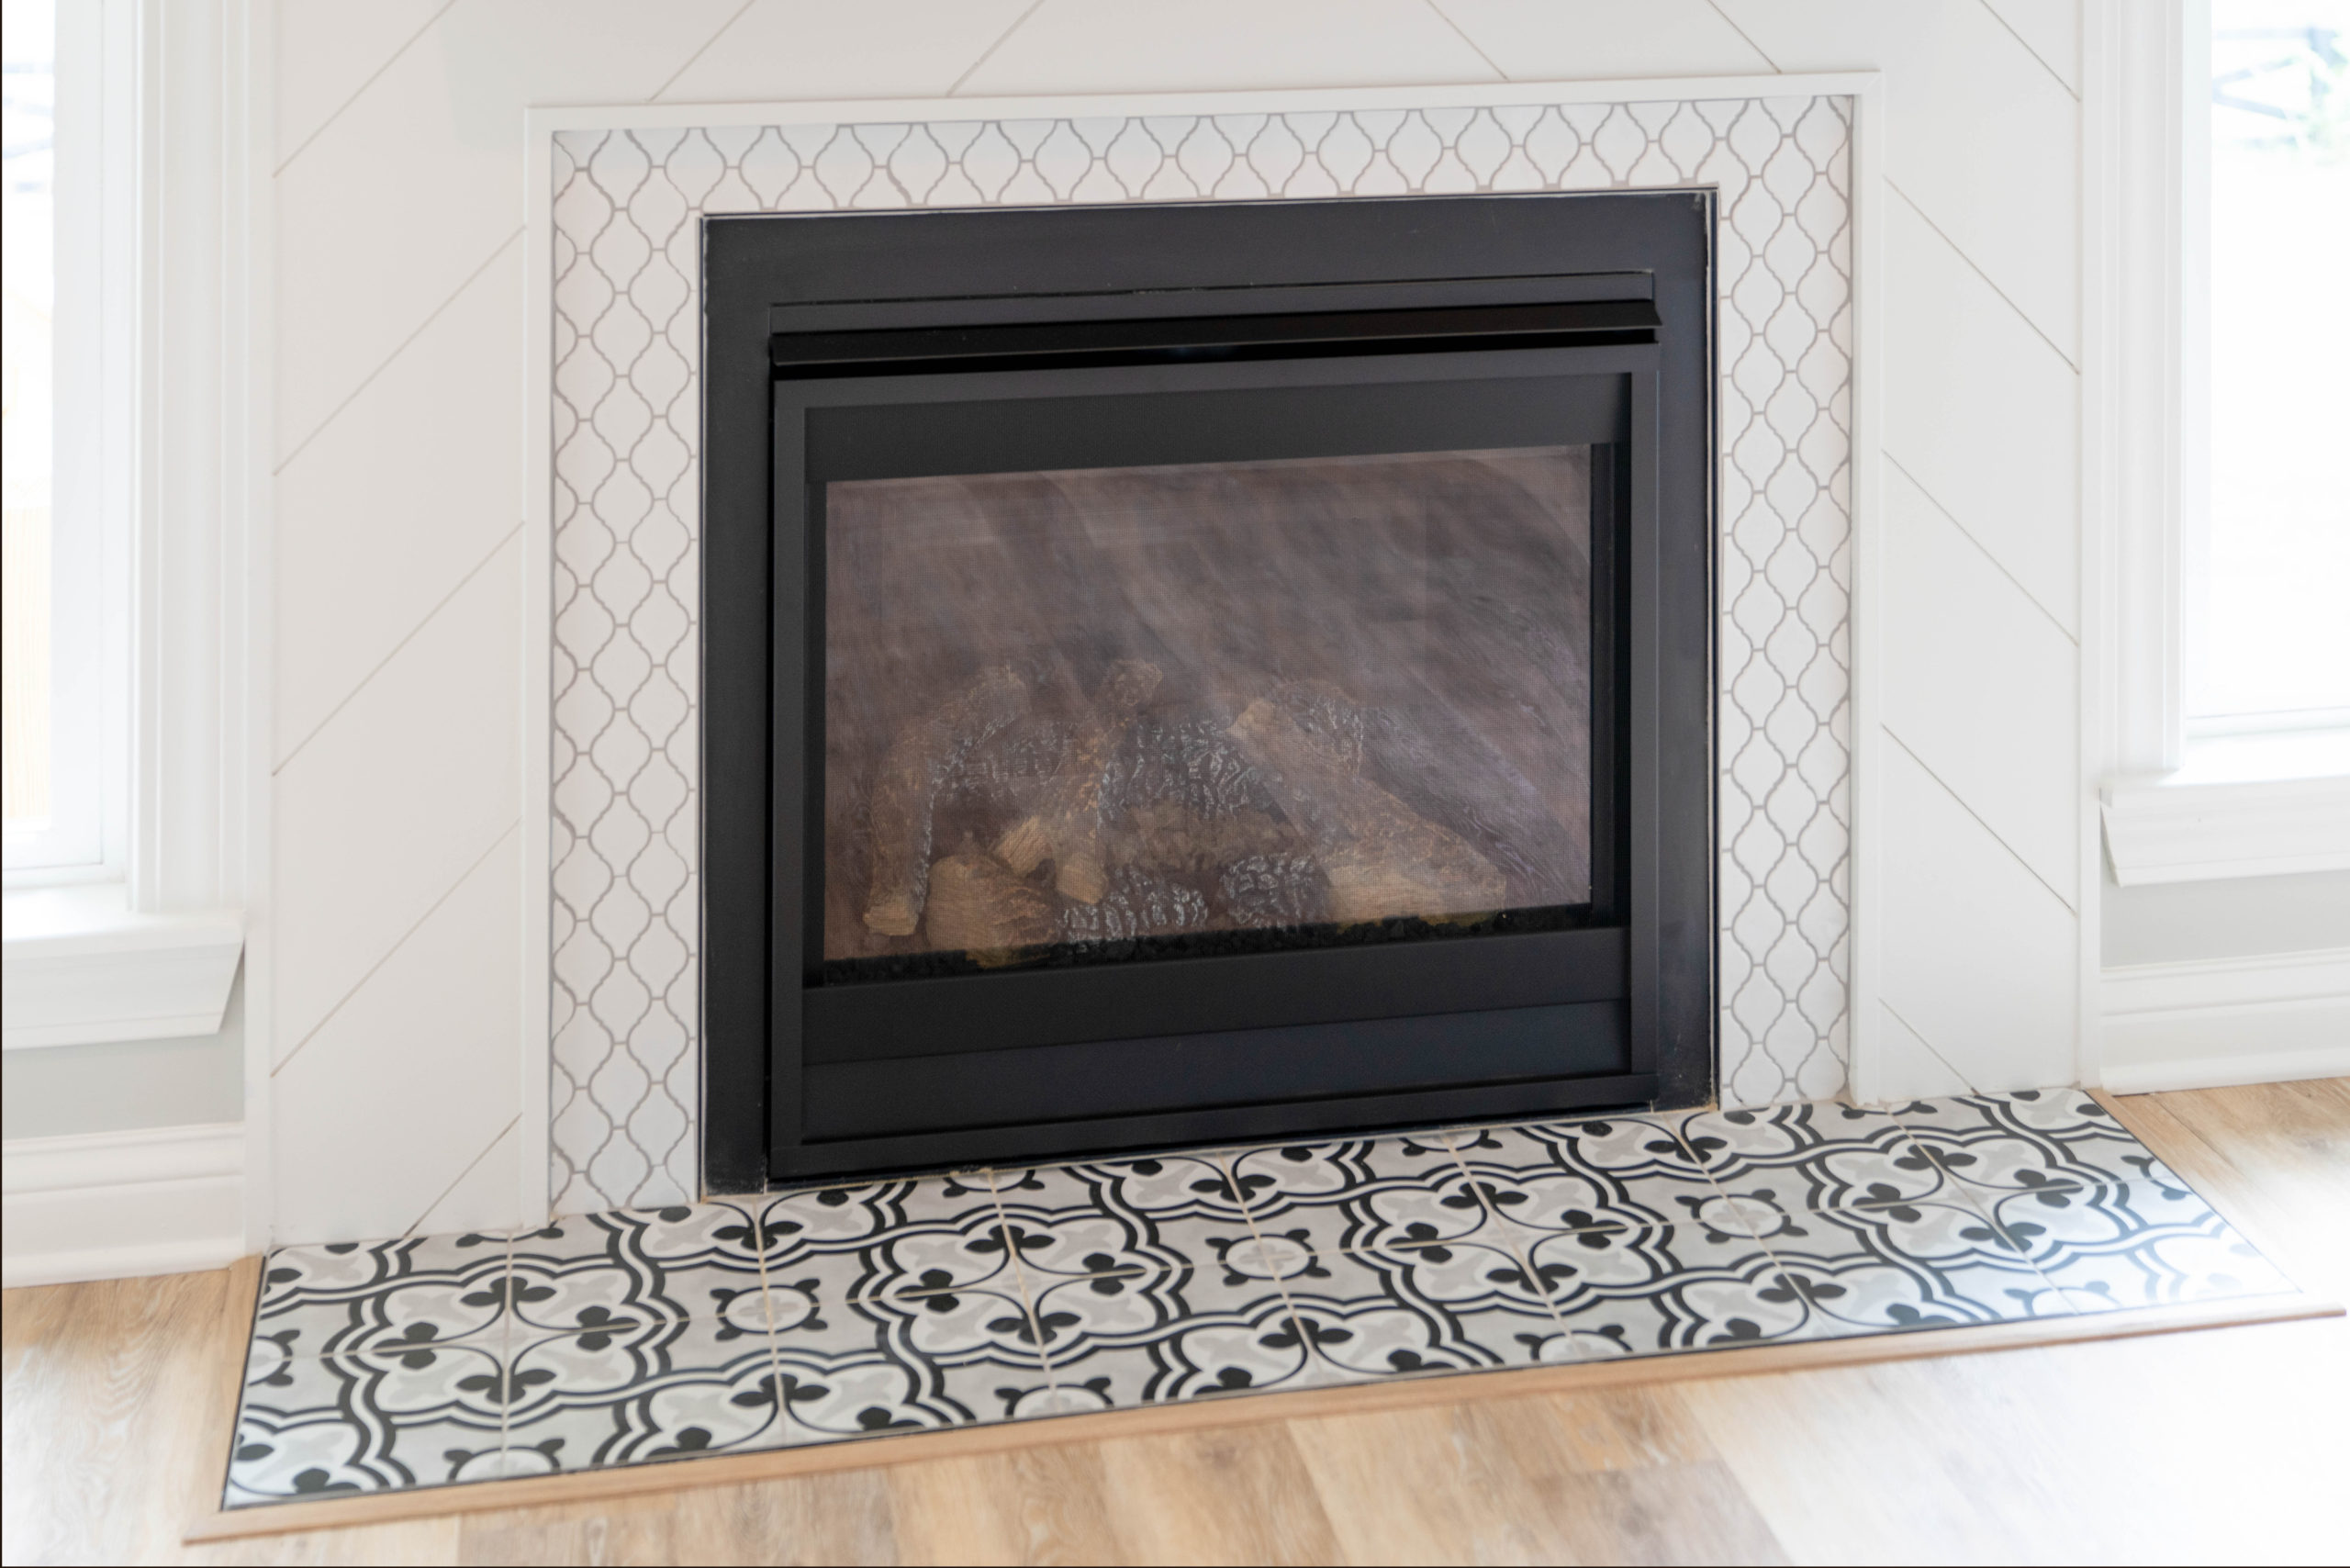 white tiled fireplace with geometric floor tile design